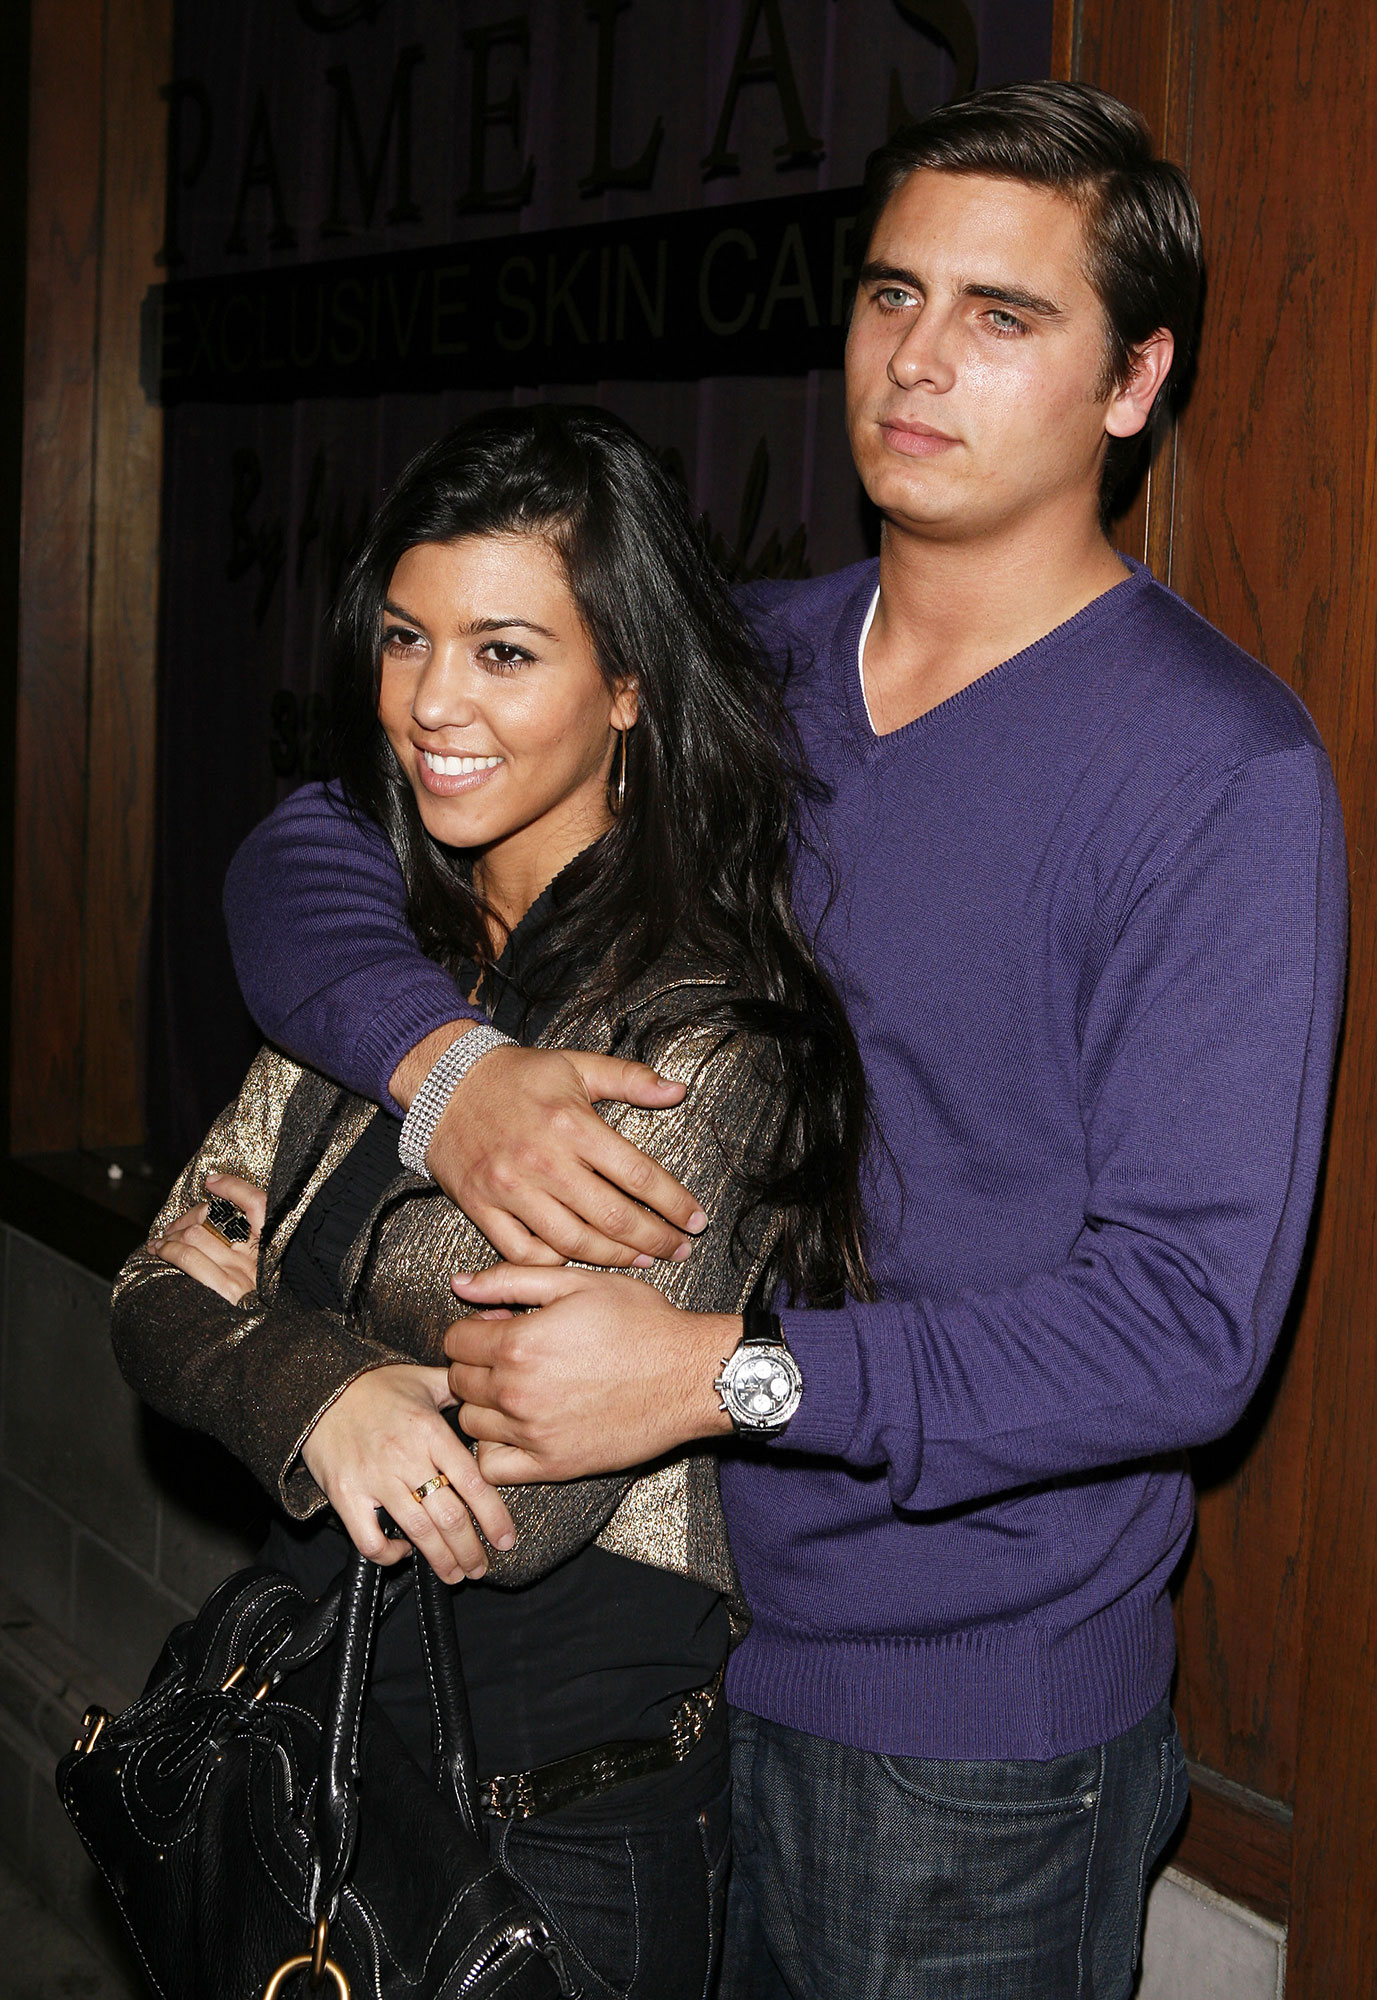 Kourtney Kardashian and Scott Disick - It all began in 2006, when Kourtney met Disick at a party thrown by Girls Gone Wild's Francis in Mexico.